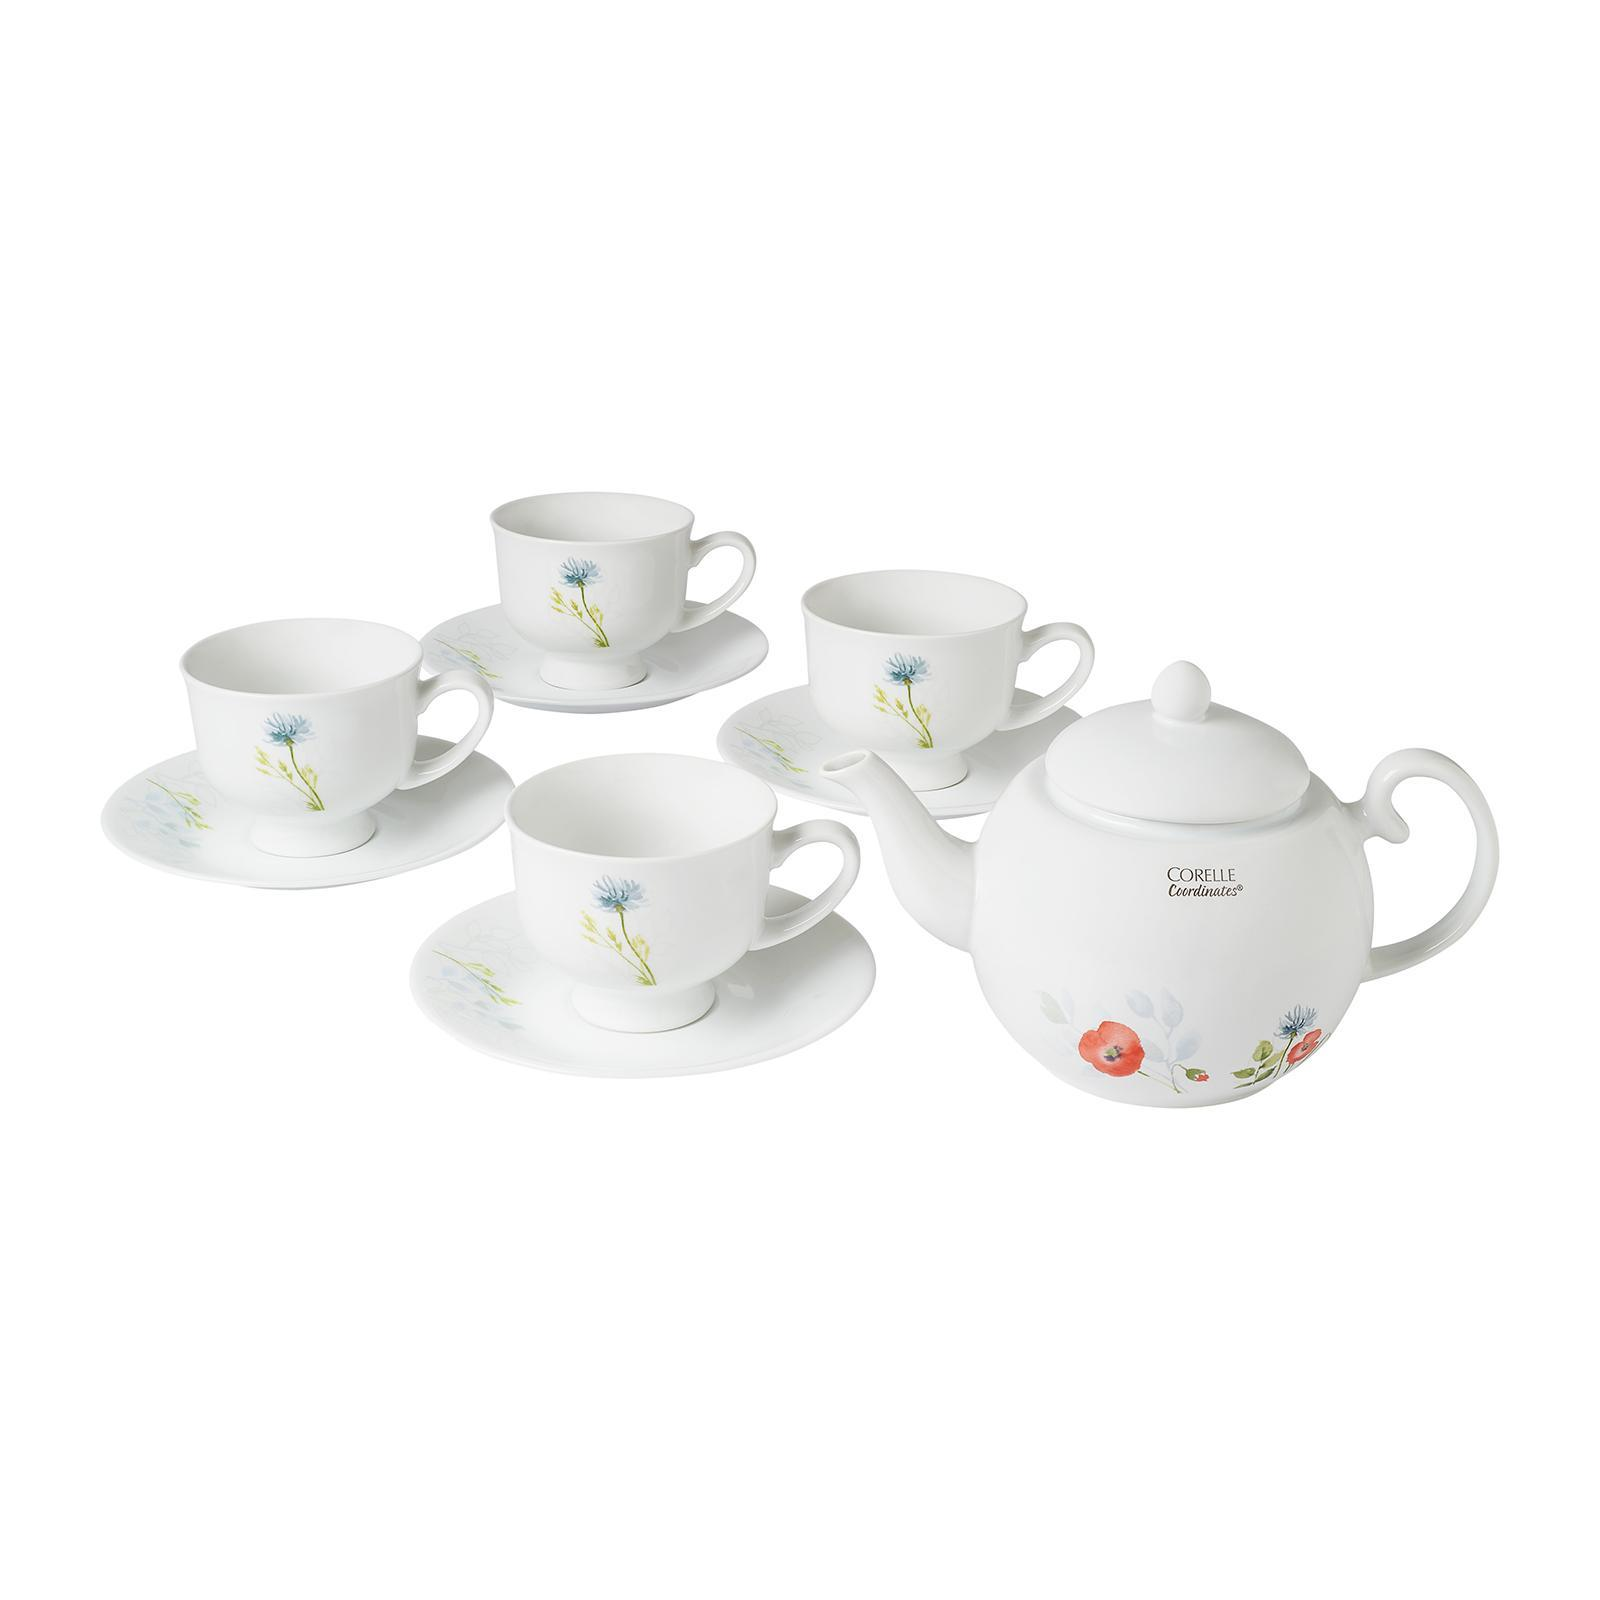 Corelle Coordinates 8 PCS Cup And Saucer Set with FREE 850 ML Teapot (Design: Daisy Field)